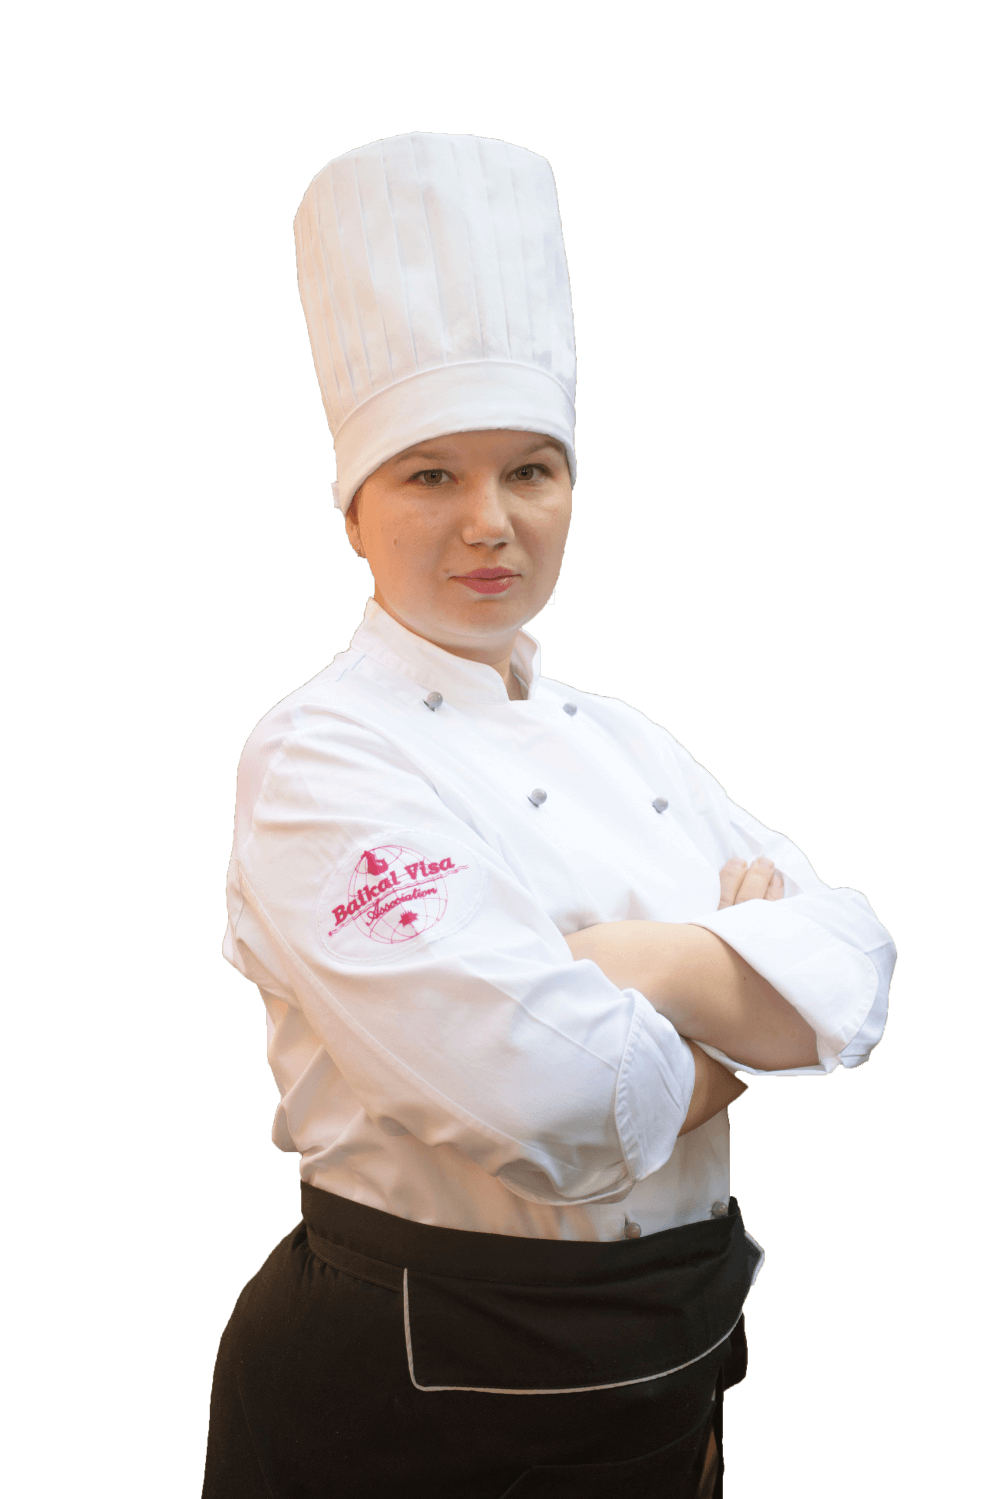 Chef PNG images.